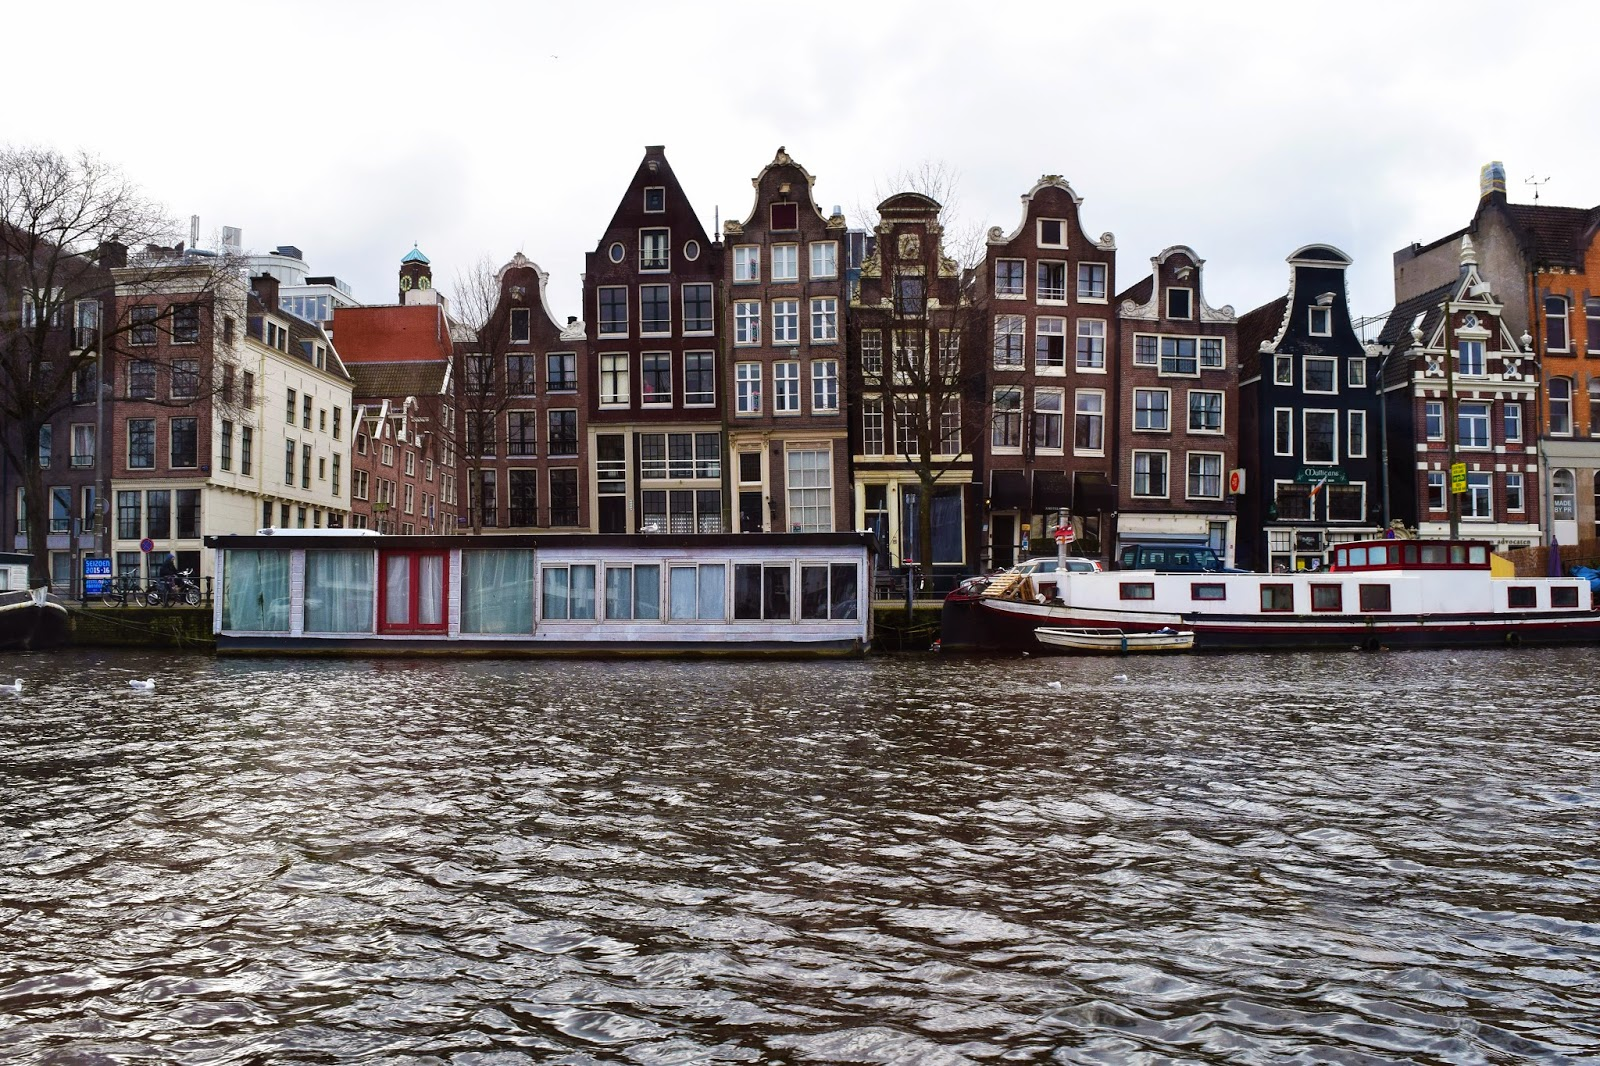 Taken from a canal boat looking across one of the wider canals in Amsterdam. In the background you can see two house boats and behind those the famous thin houses stacked side by side